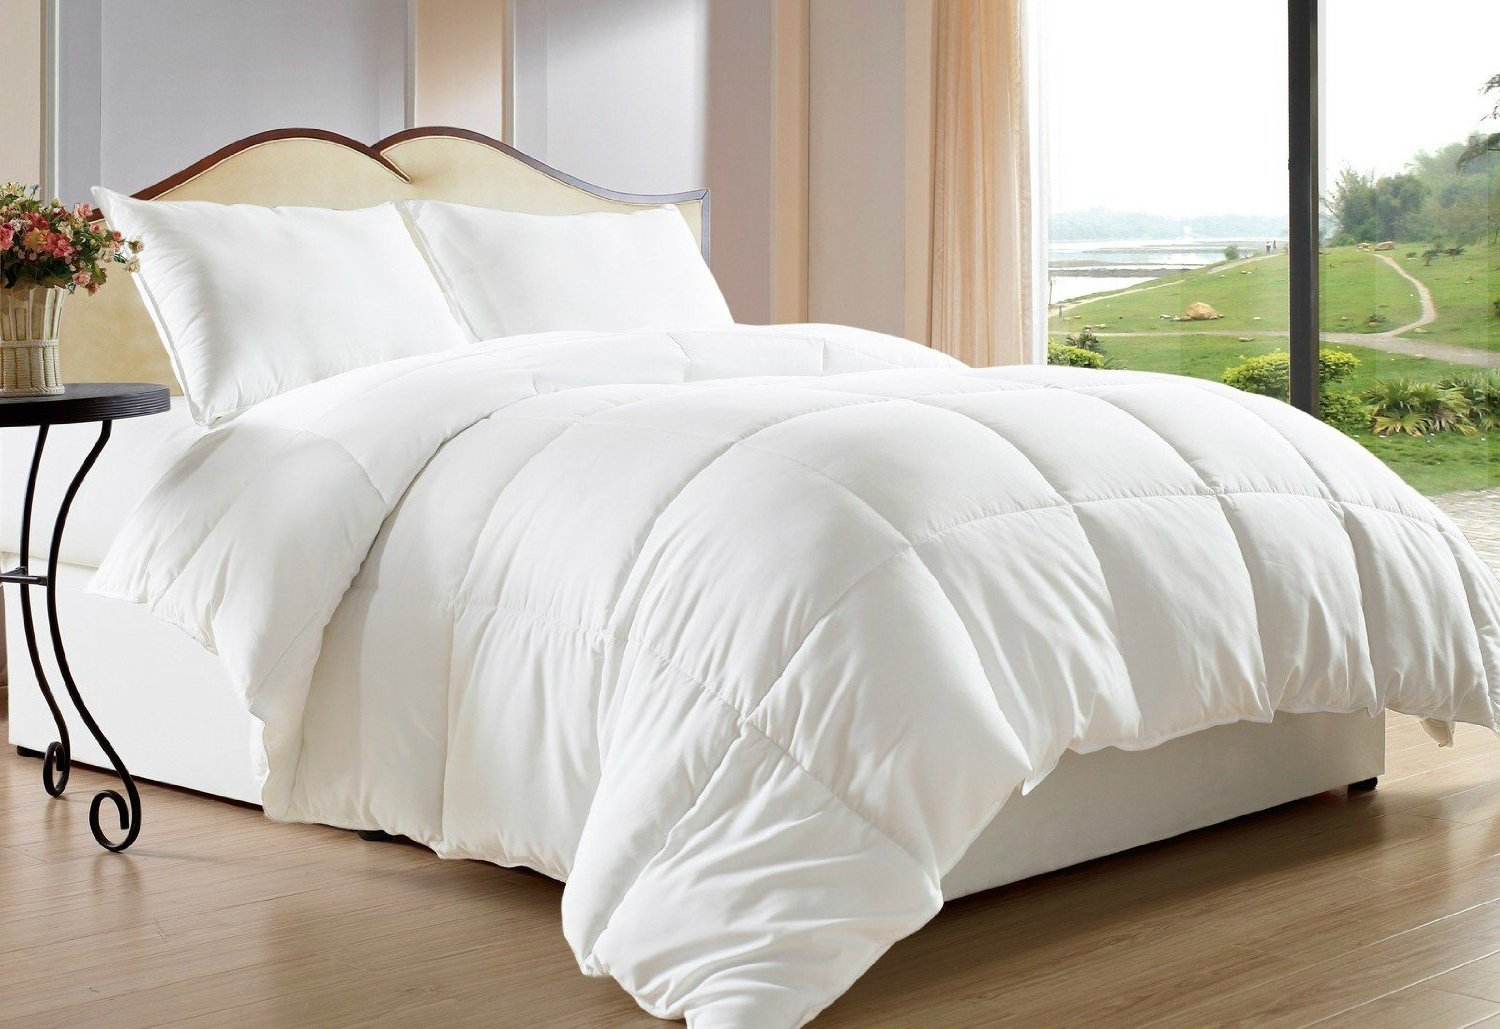 Full Size of Comforter:european Down Comforter Bedding Best Down Bed  Comforters Pure Cotton Material ...